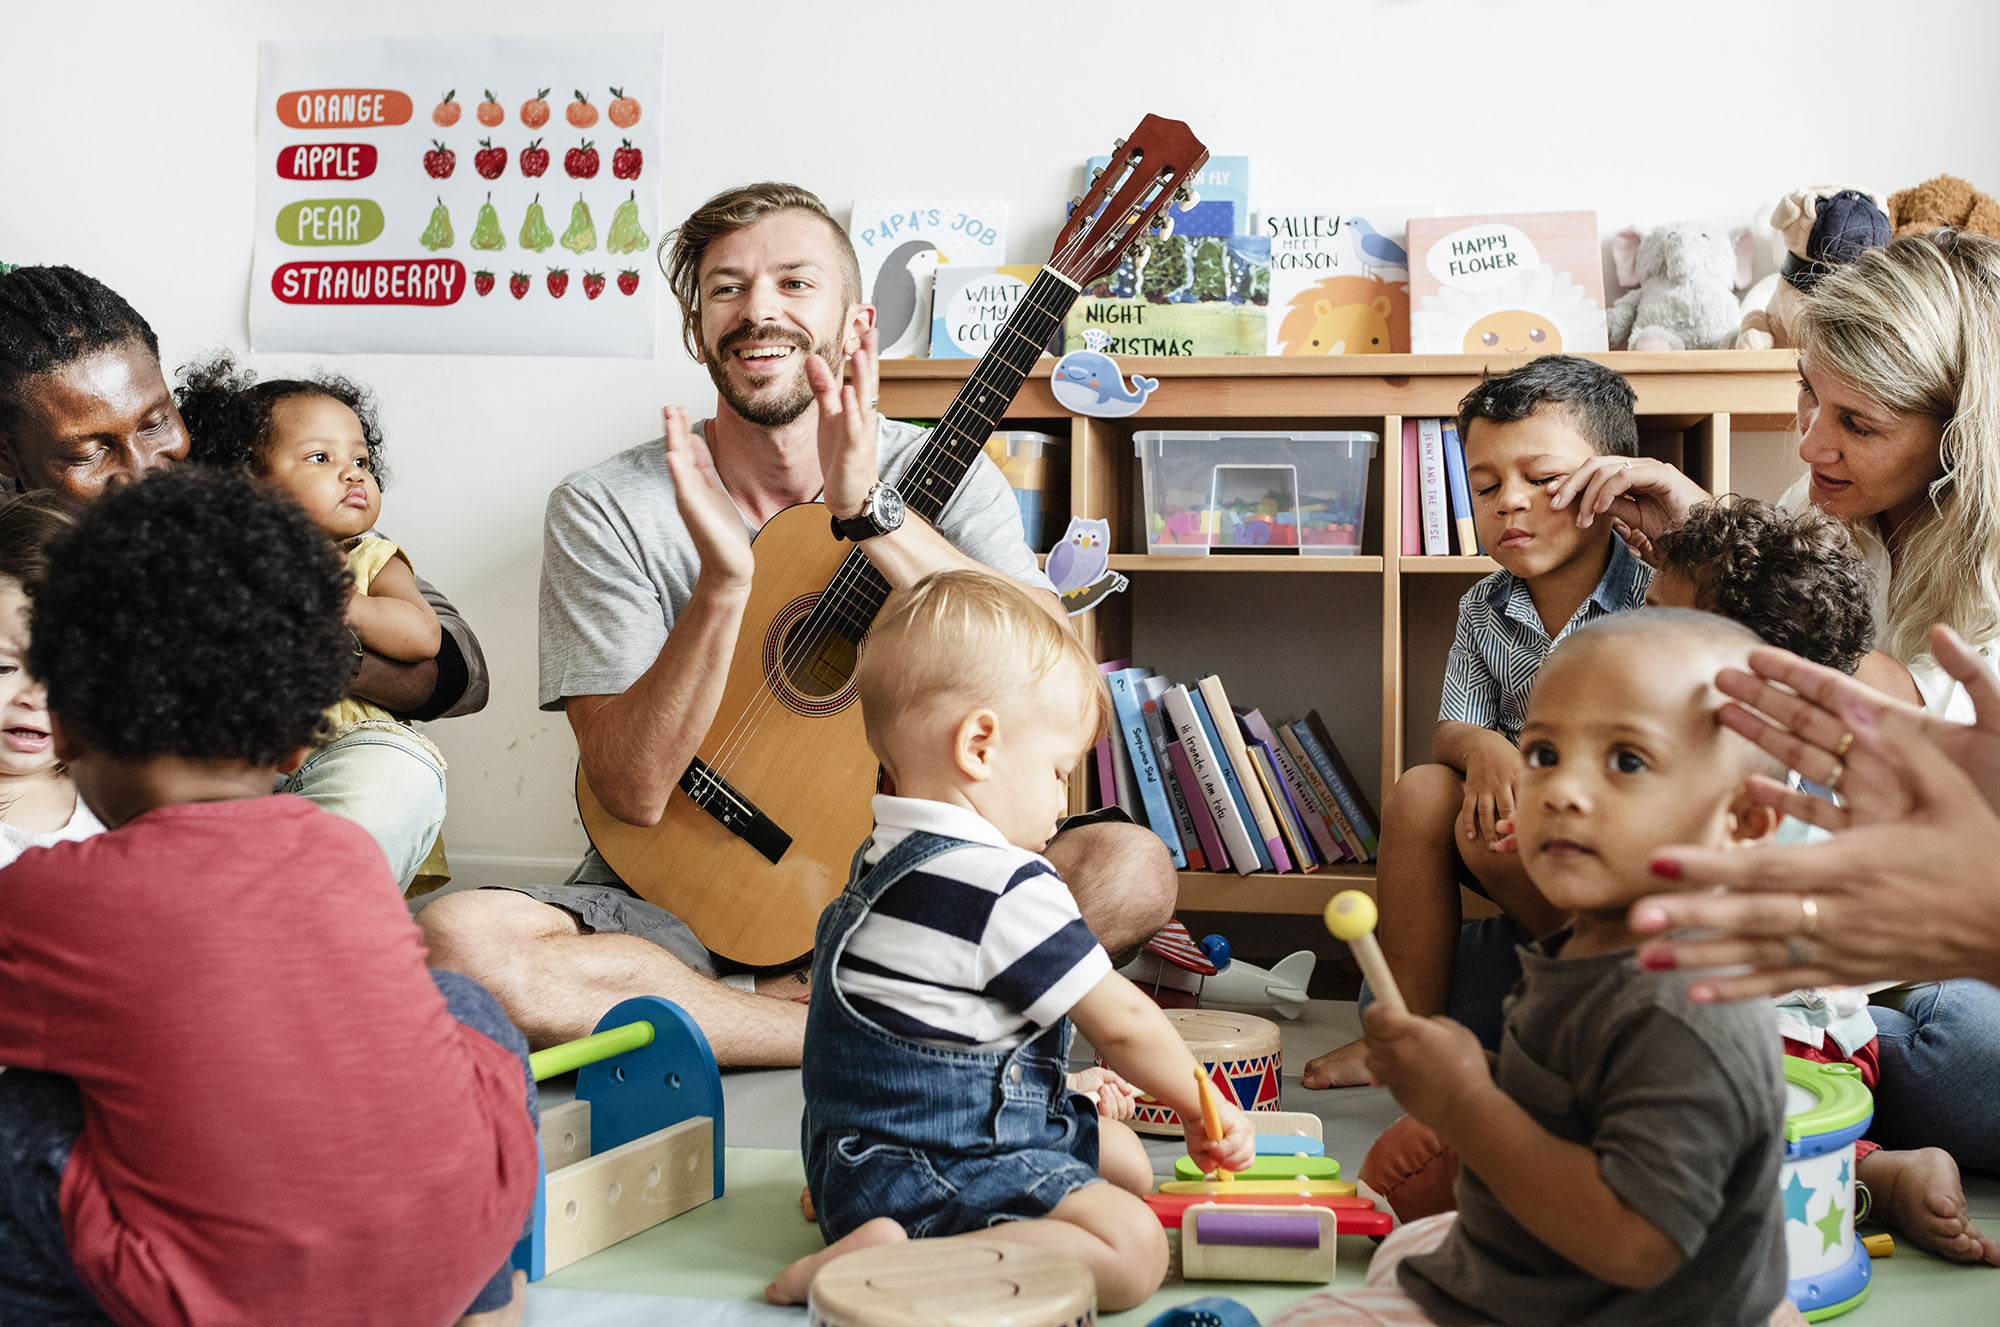 NAEYC 10 program standards serves as a guide to help parents choose the right preschool program